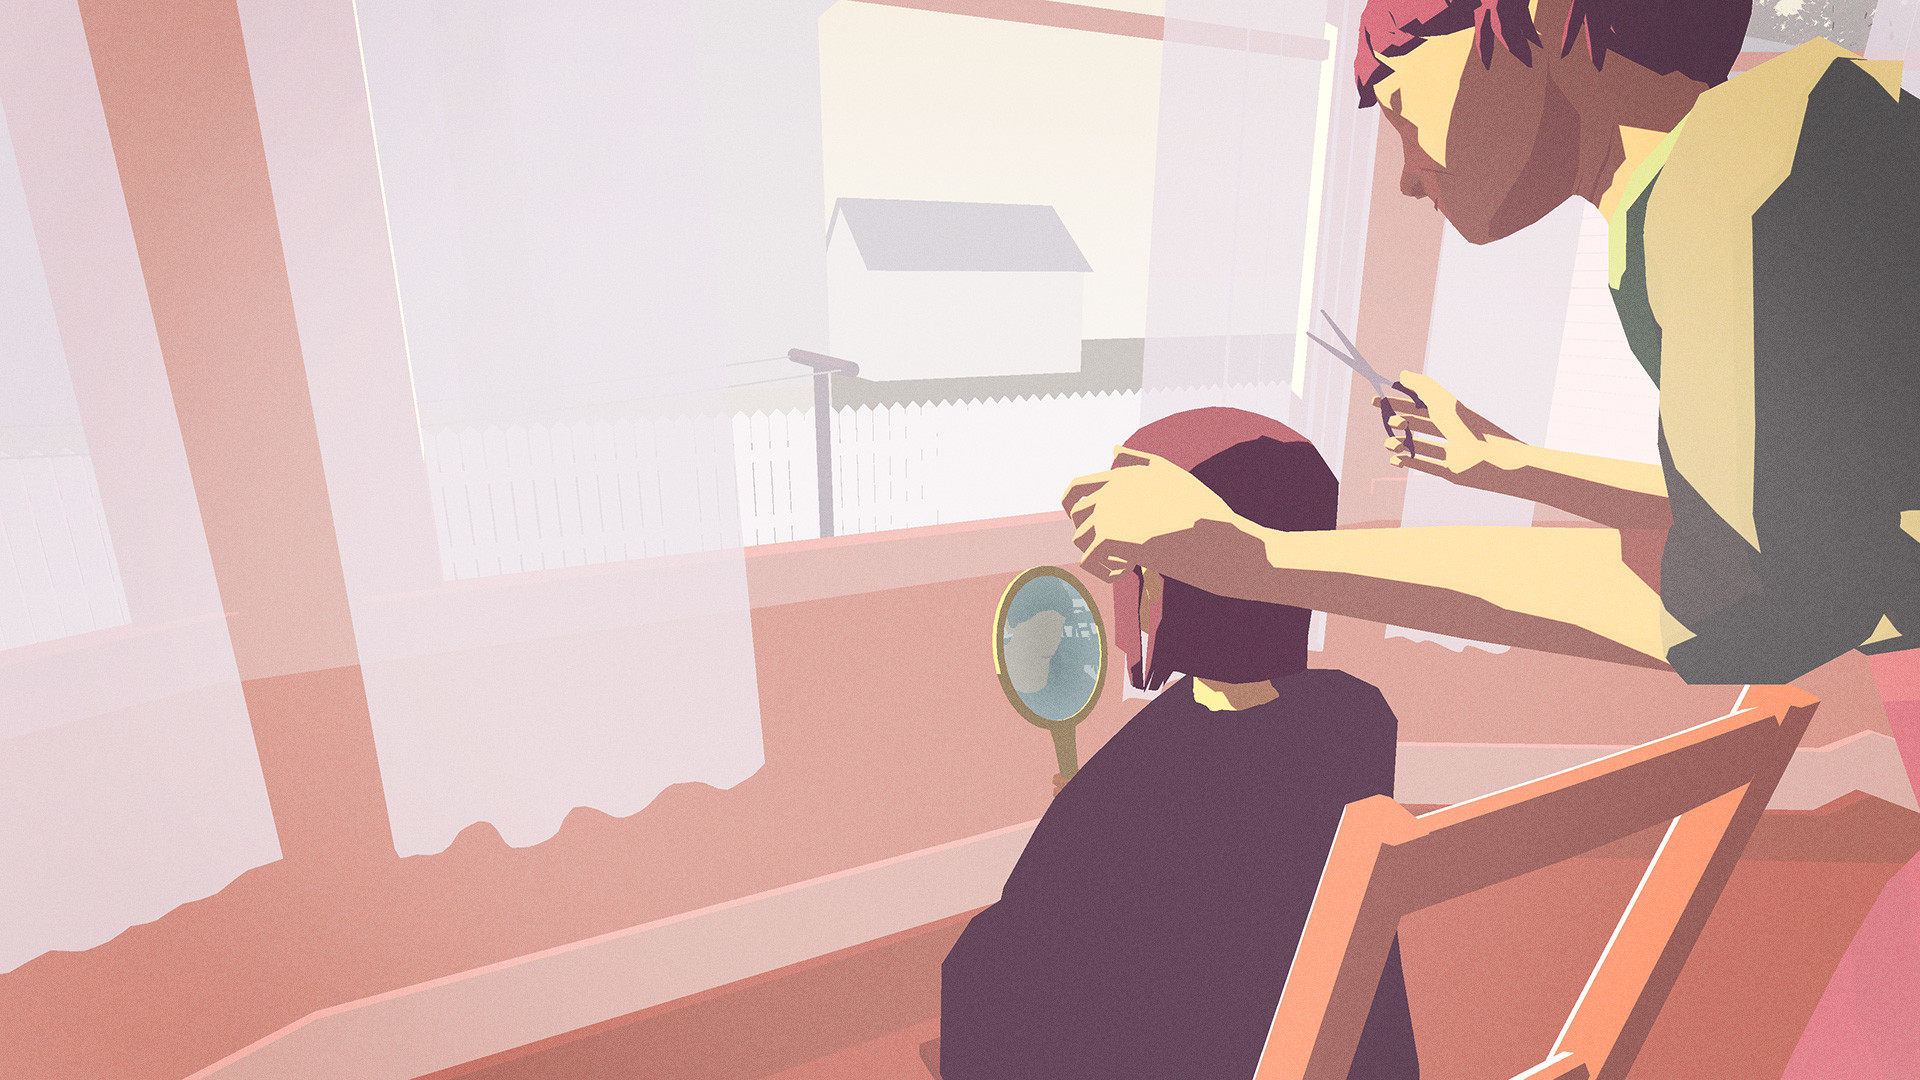 Narrative Exploration Game 'Hindsight' from Annapurna Interactive Is Coming to iOS, Nintendo Switch, and Steam, The Gamers Dreams, thegamersdreams.com